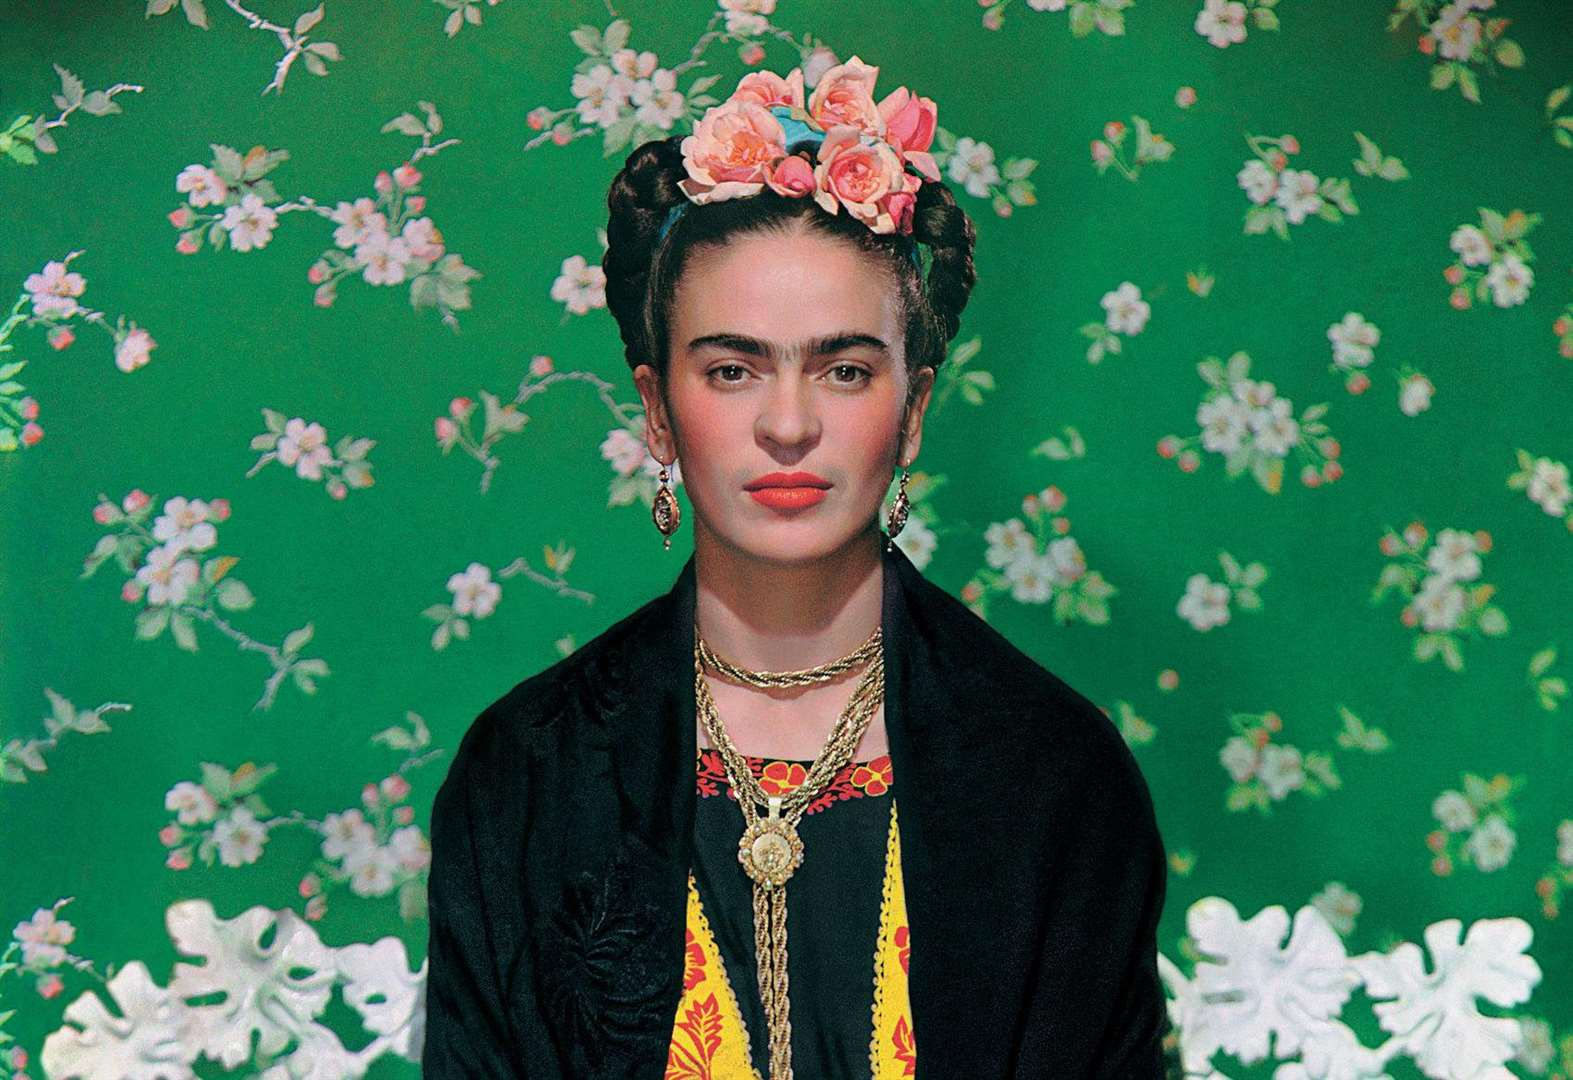 V&A curator to present Frida Kahlo talk next week in Cambridge